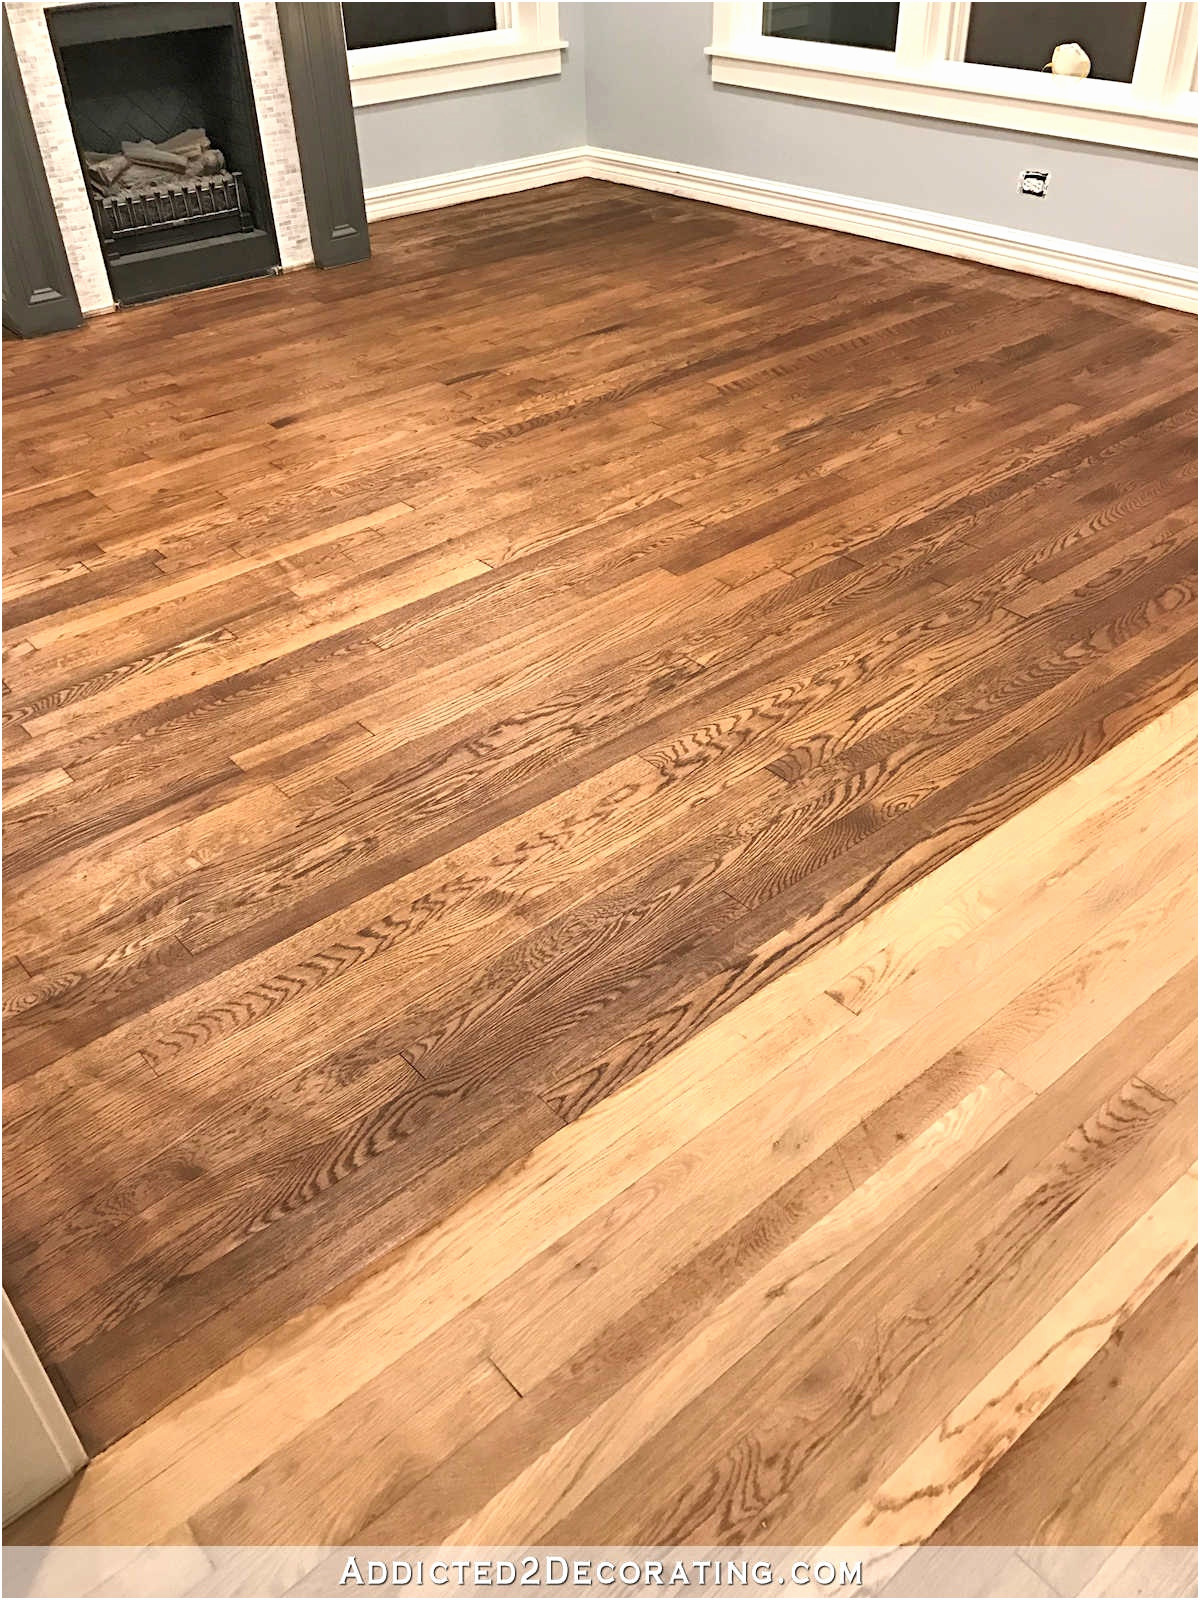 21 attractive Hardwood Floor Refinishing Boulder 2021 free download hardwood floor refinishing boulder of fantastic floors karndean opus flooring installed by us the large intended for fantastic floors 50 luxury armstrong hardwood flooring pics 50 s